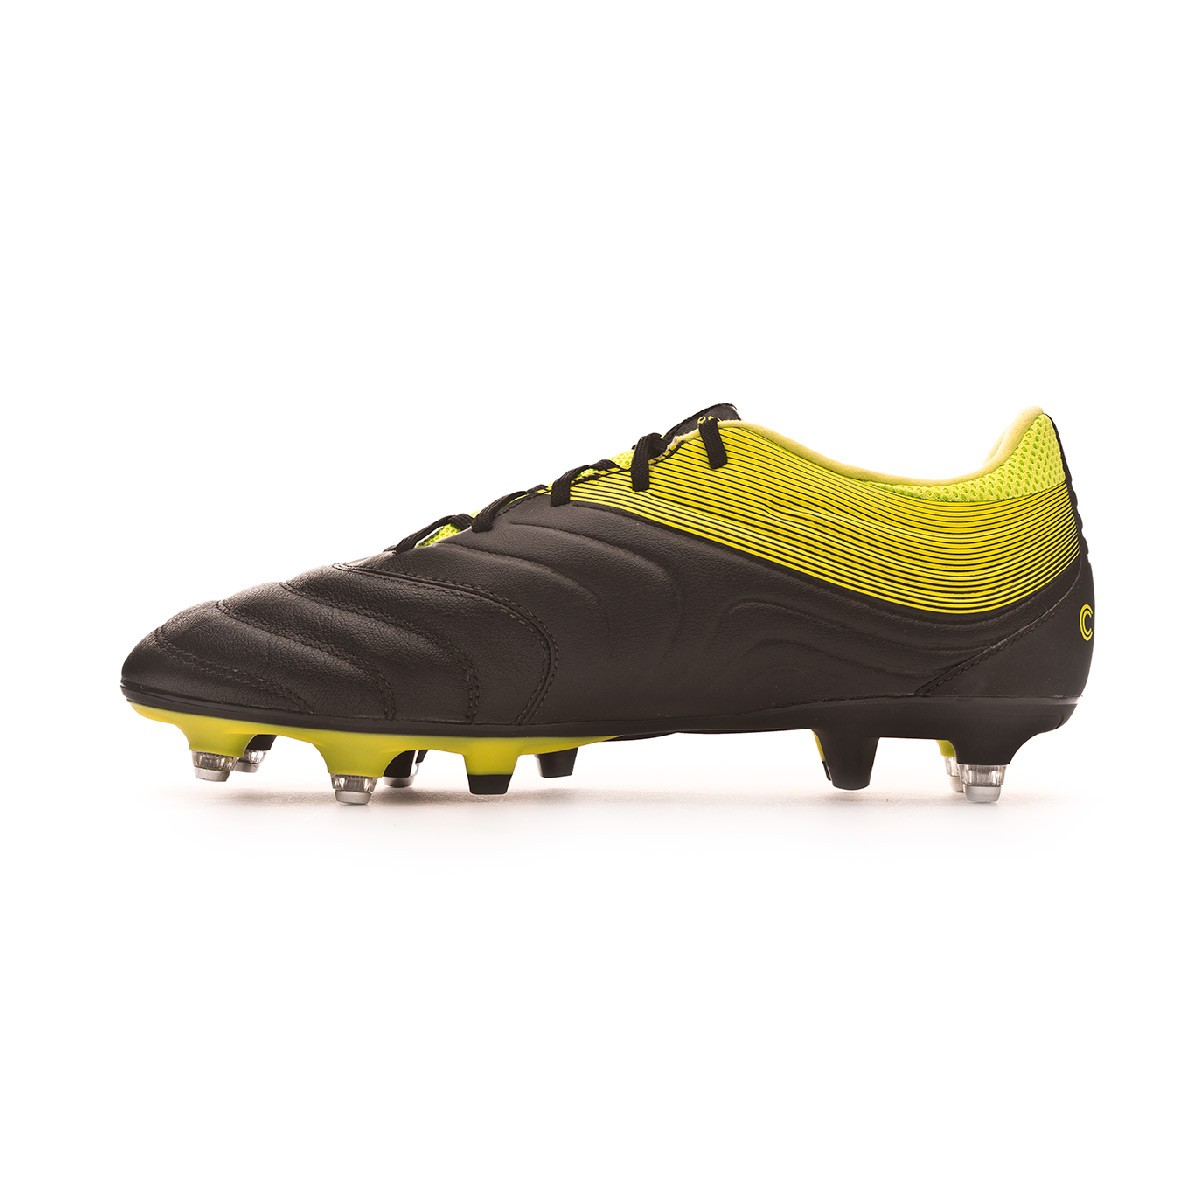 257c475d6 Football Boots adidas Copa 19.3 SG Core black-Solar yellow-Core black -  Football store Fútbol Emotion